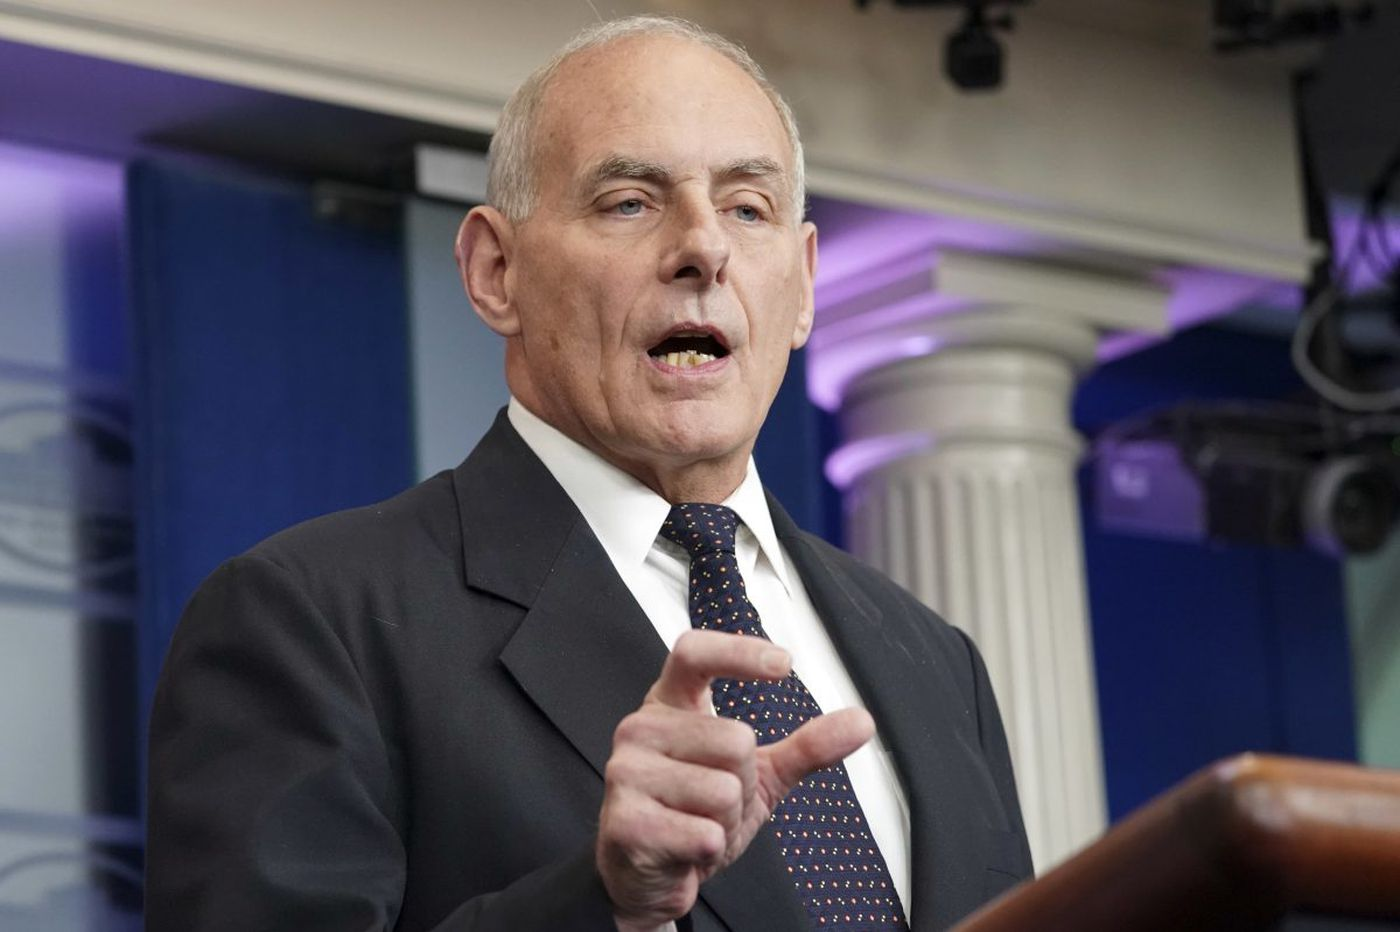 Historians respond to John Kelly's Civil War remarks: 'Strange,' 'sad,' 'wrong'